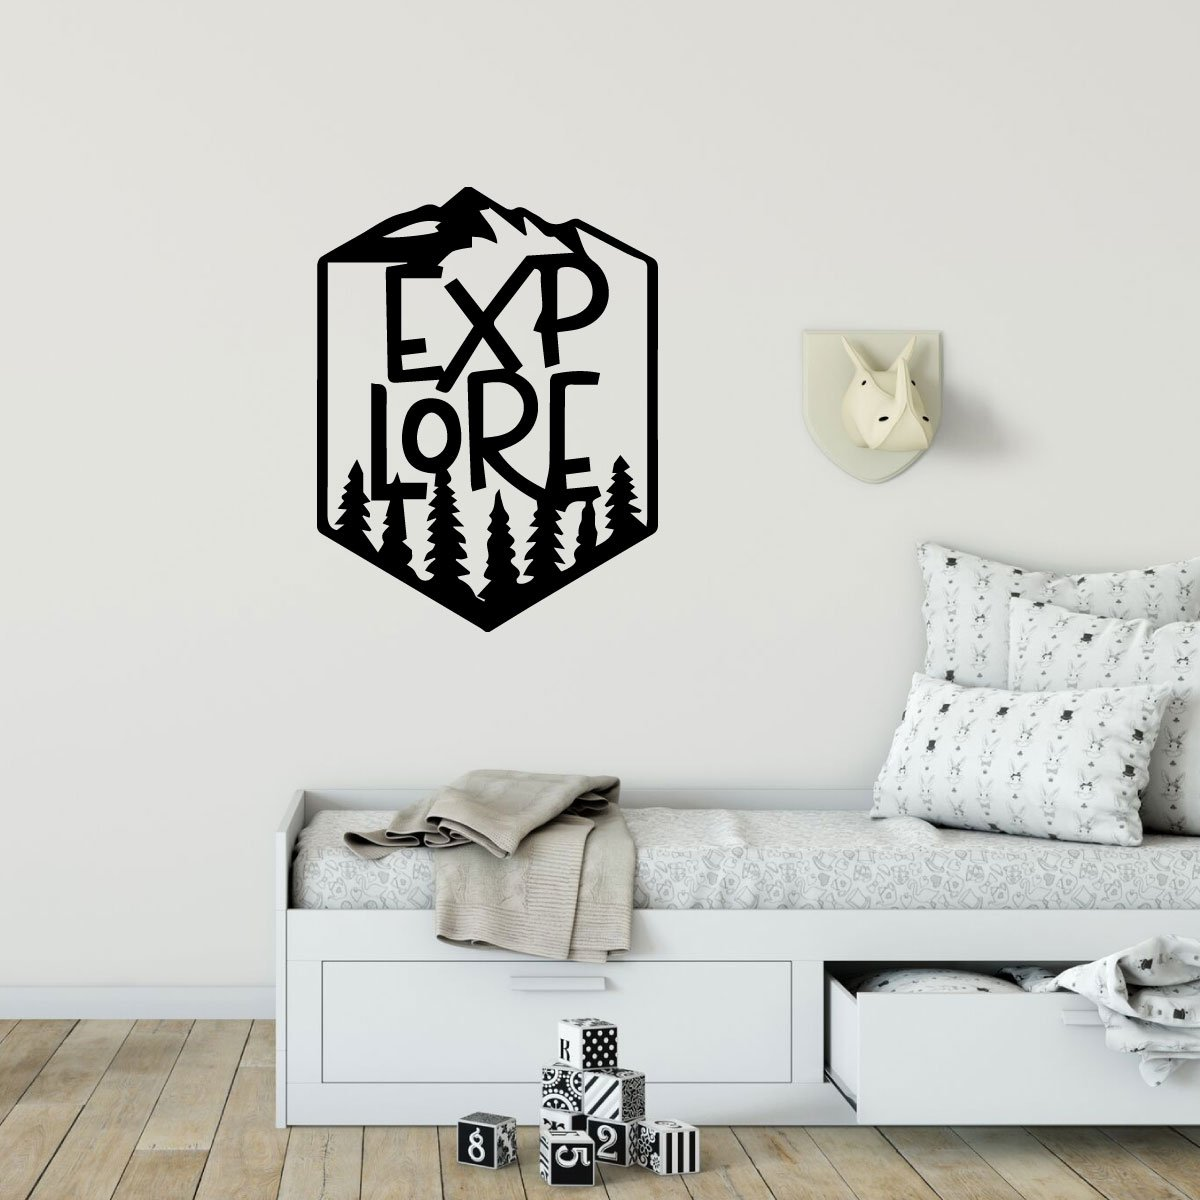 Explore Wall Decor - Hiking Vinyl Decoration For Bedroom, Home, Office, or Classroom